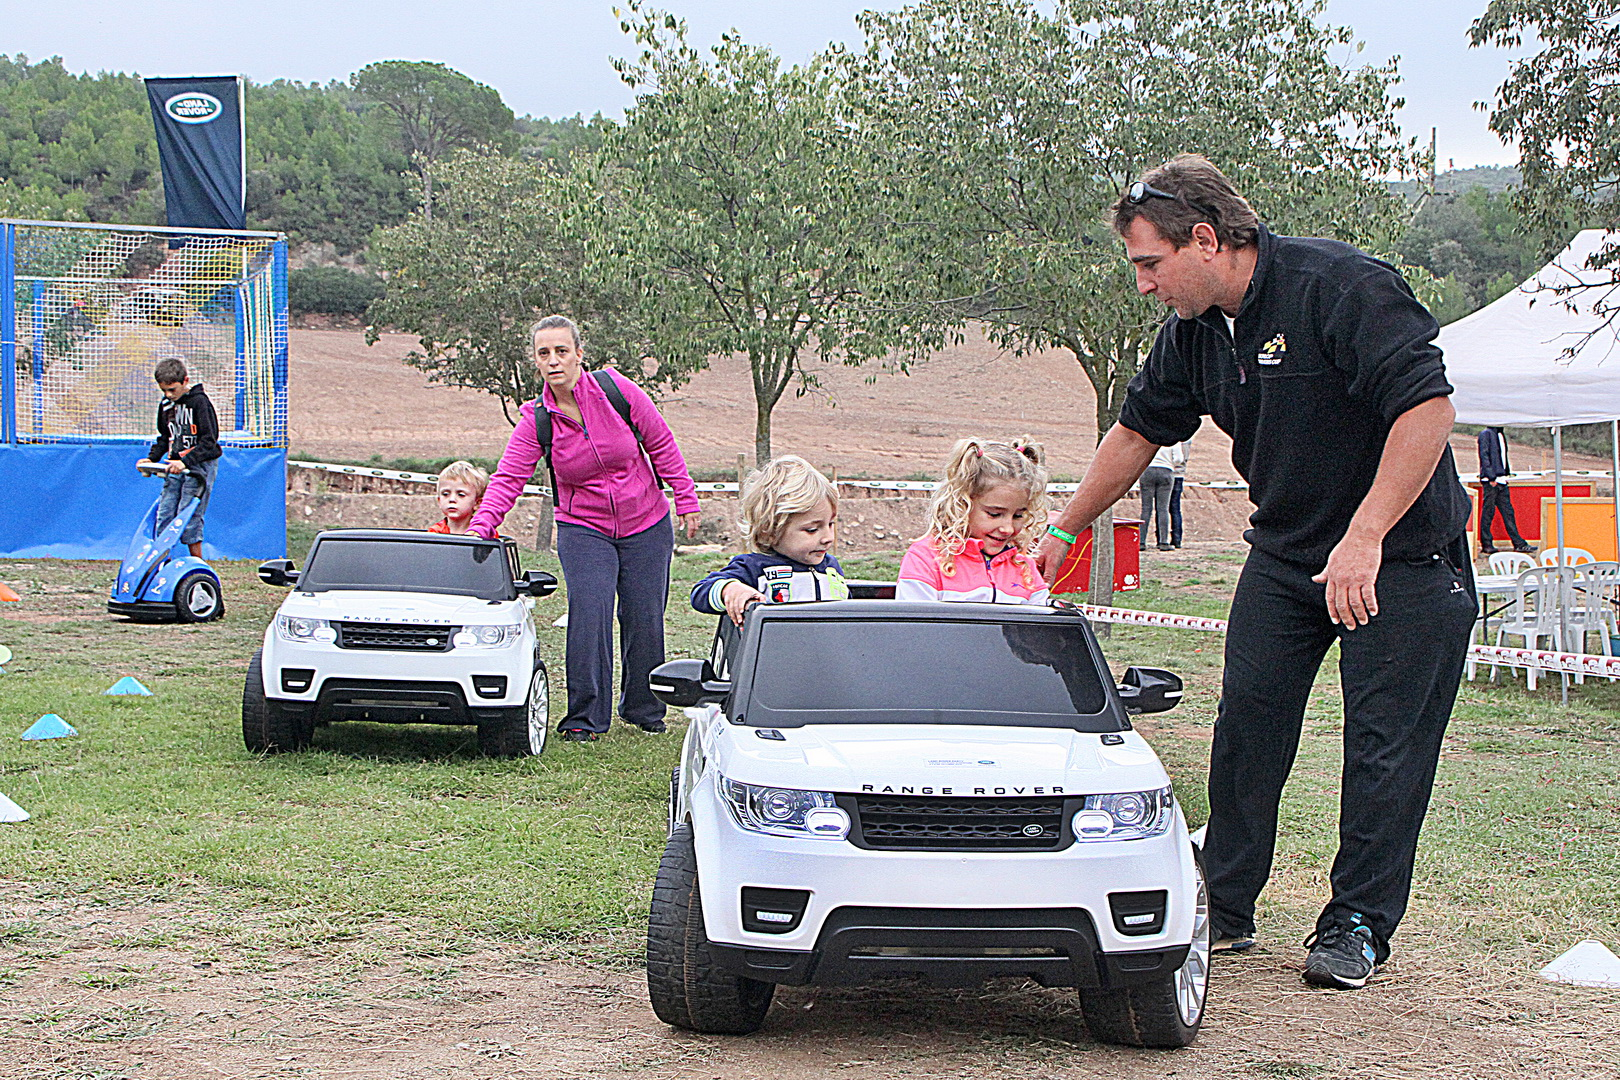 Land_Rover_Party_2015 (26)